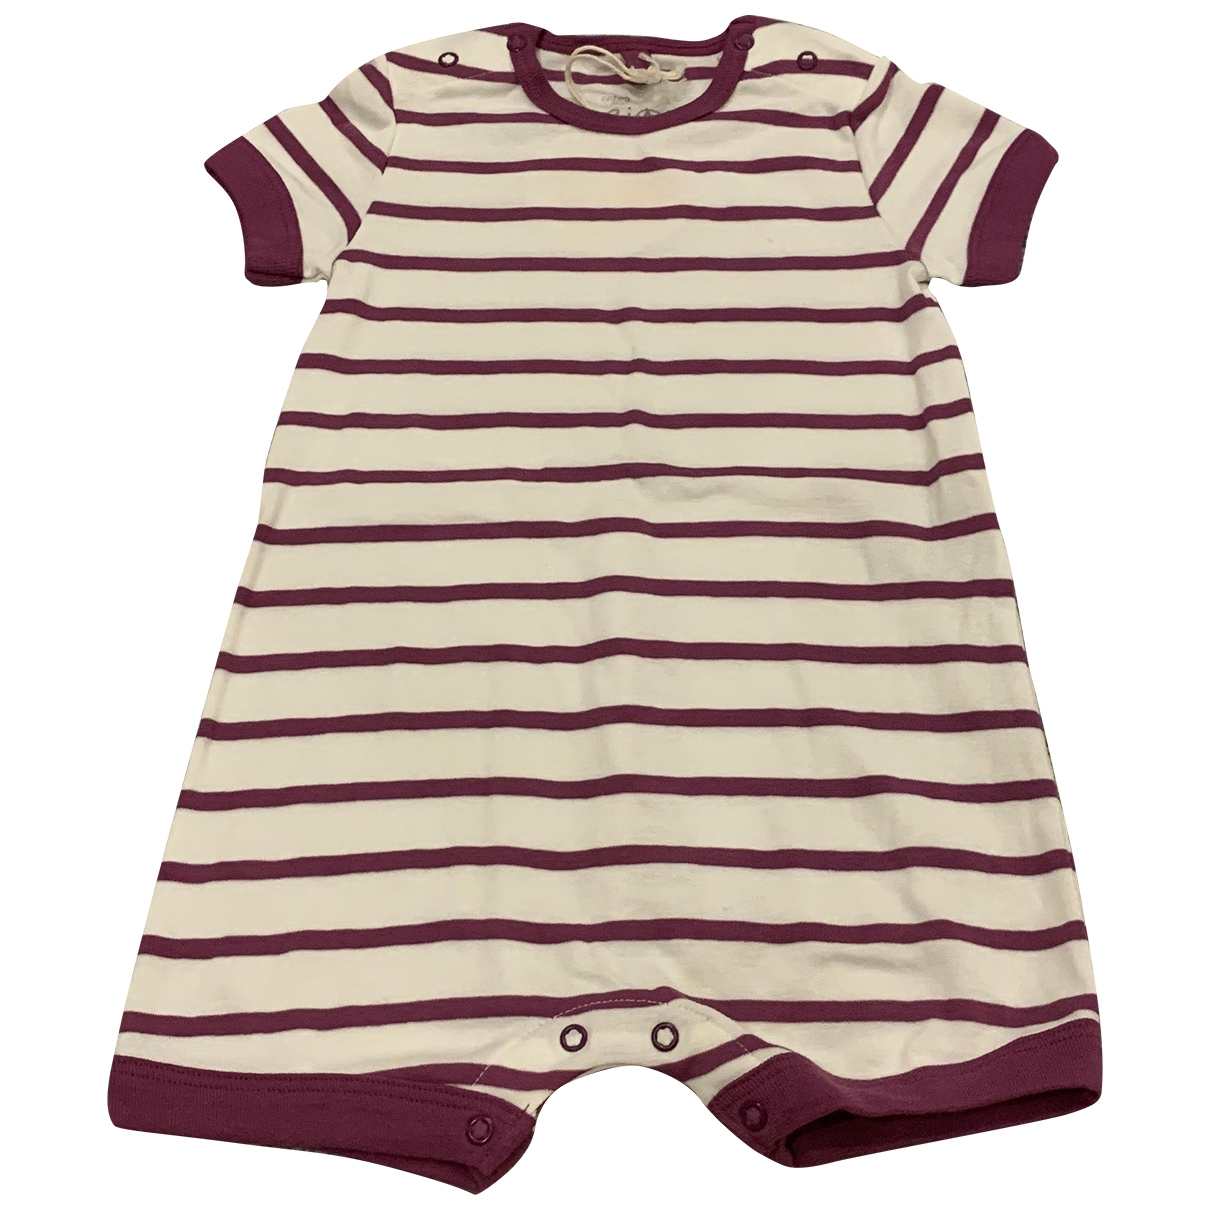 Petit Bateau \N Cotton Outfits for Kids 18 months - up to 81cm FR